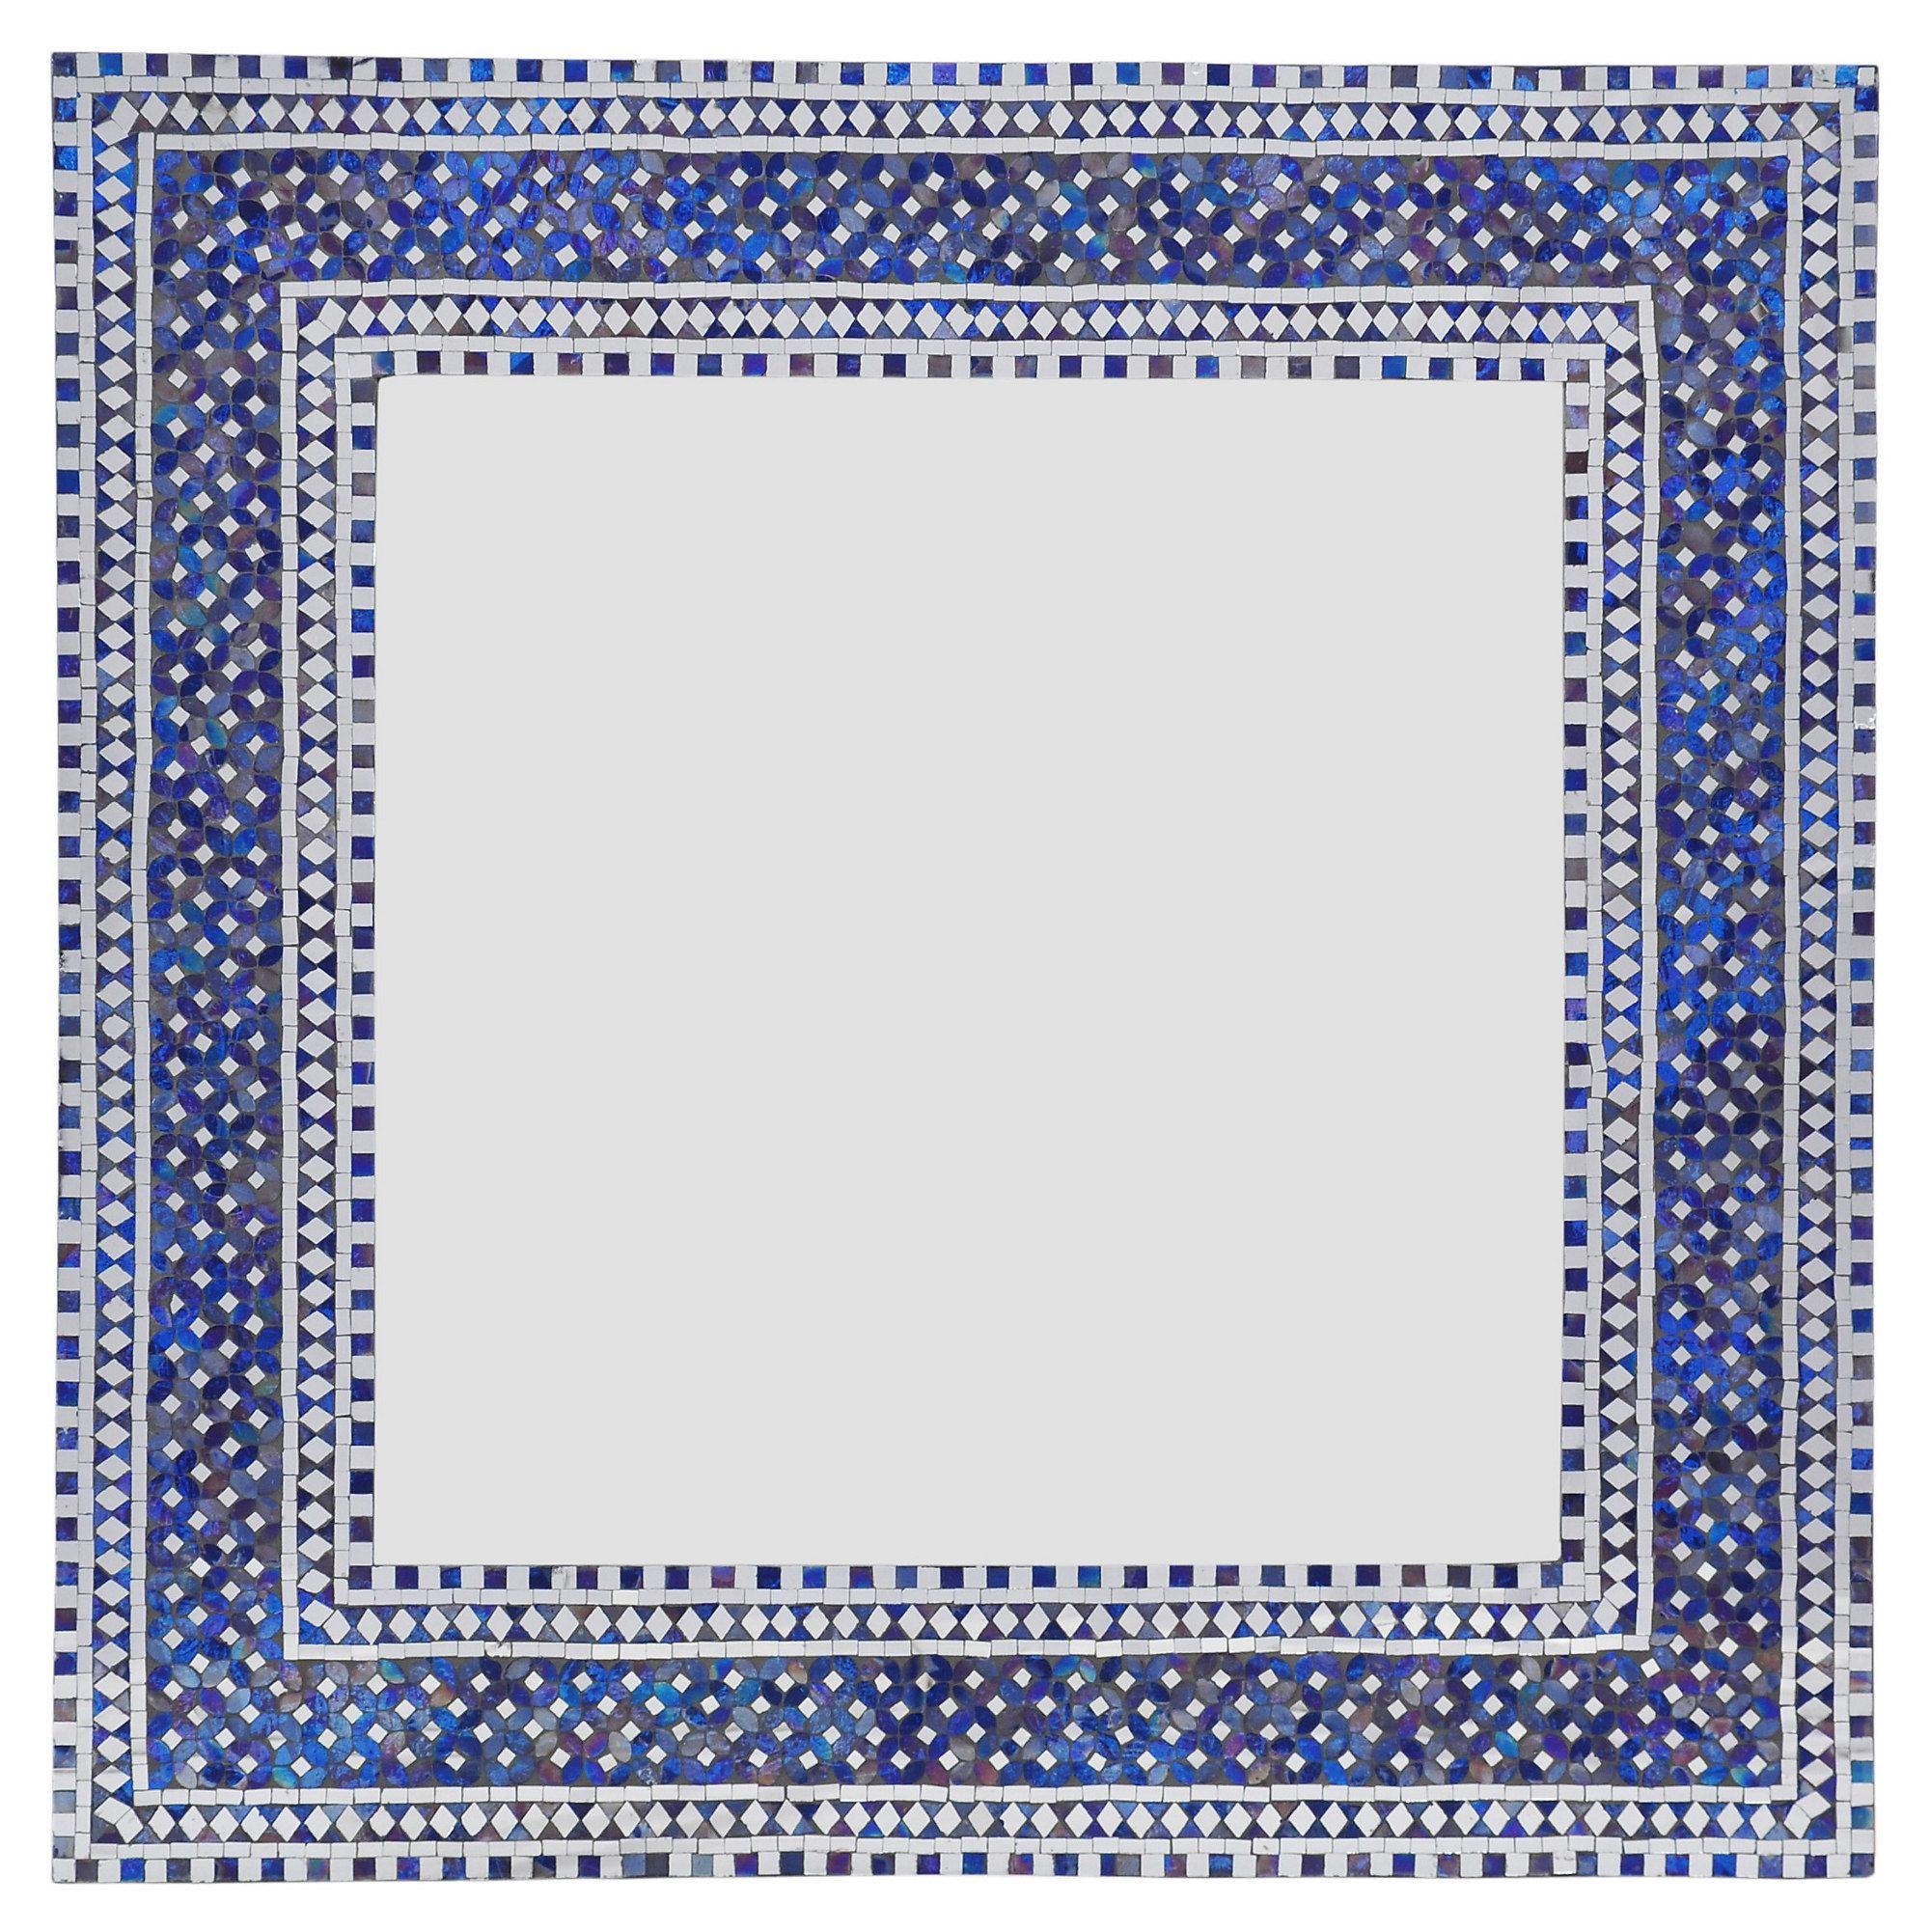 Inspired by palatial mosaic floor designs of Italy and Spain, the printed appearance of this wall mirror is created by beautifully inset pieces of blue and white glass.